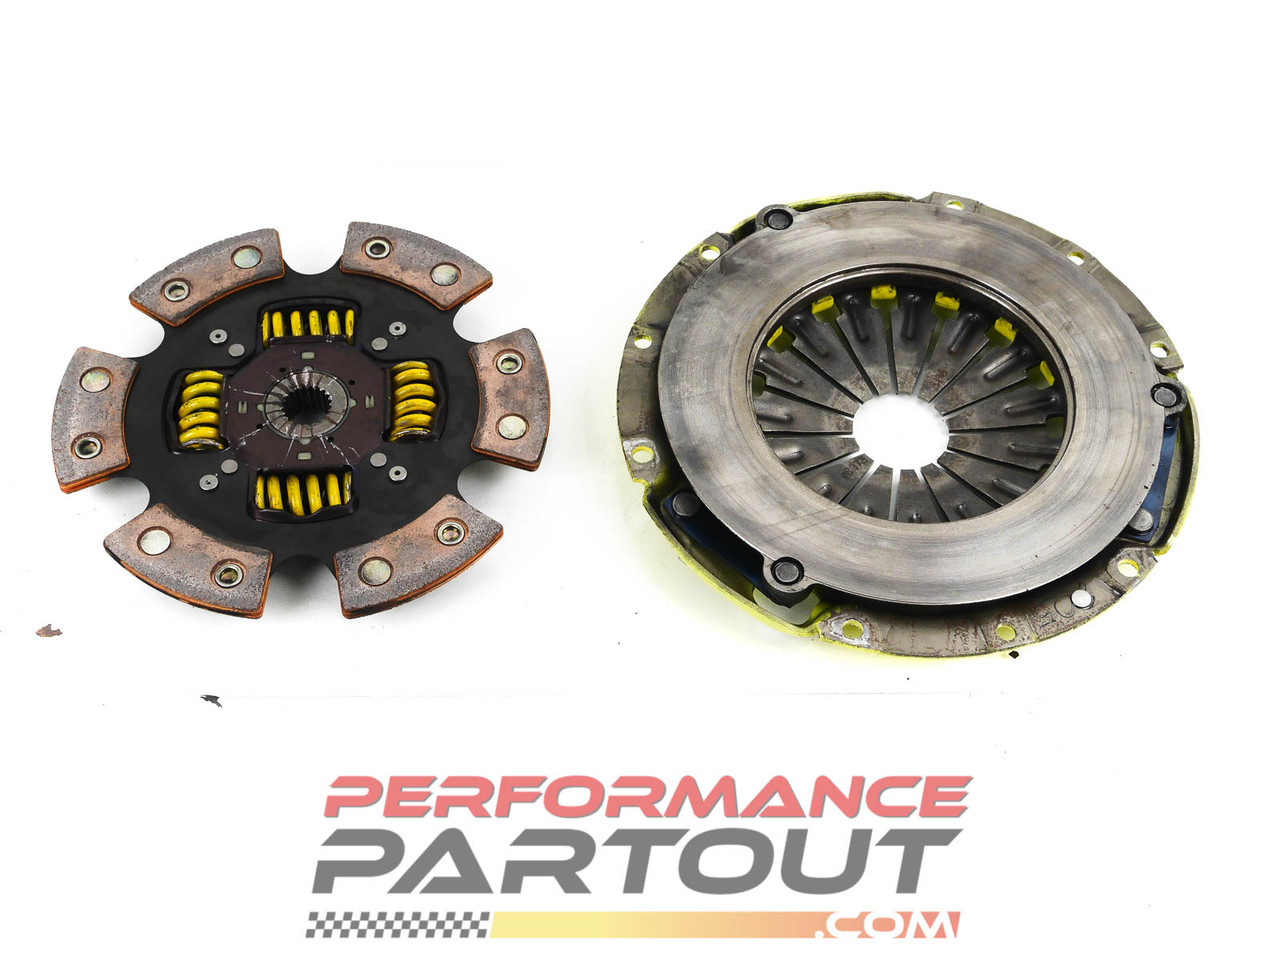 ACT 2100 w 6puck sprung disk - very low miles